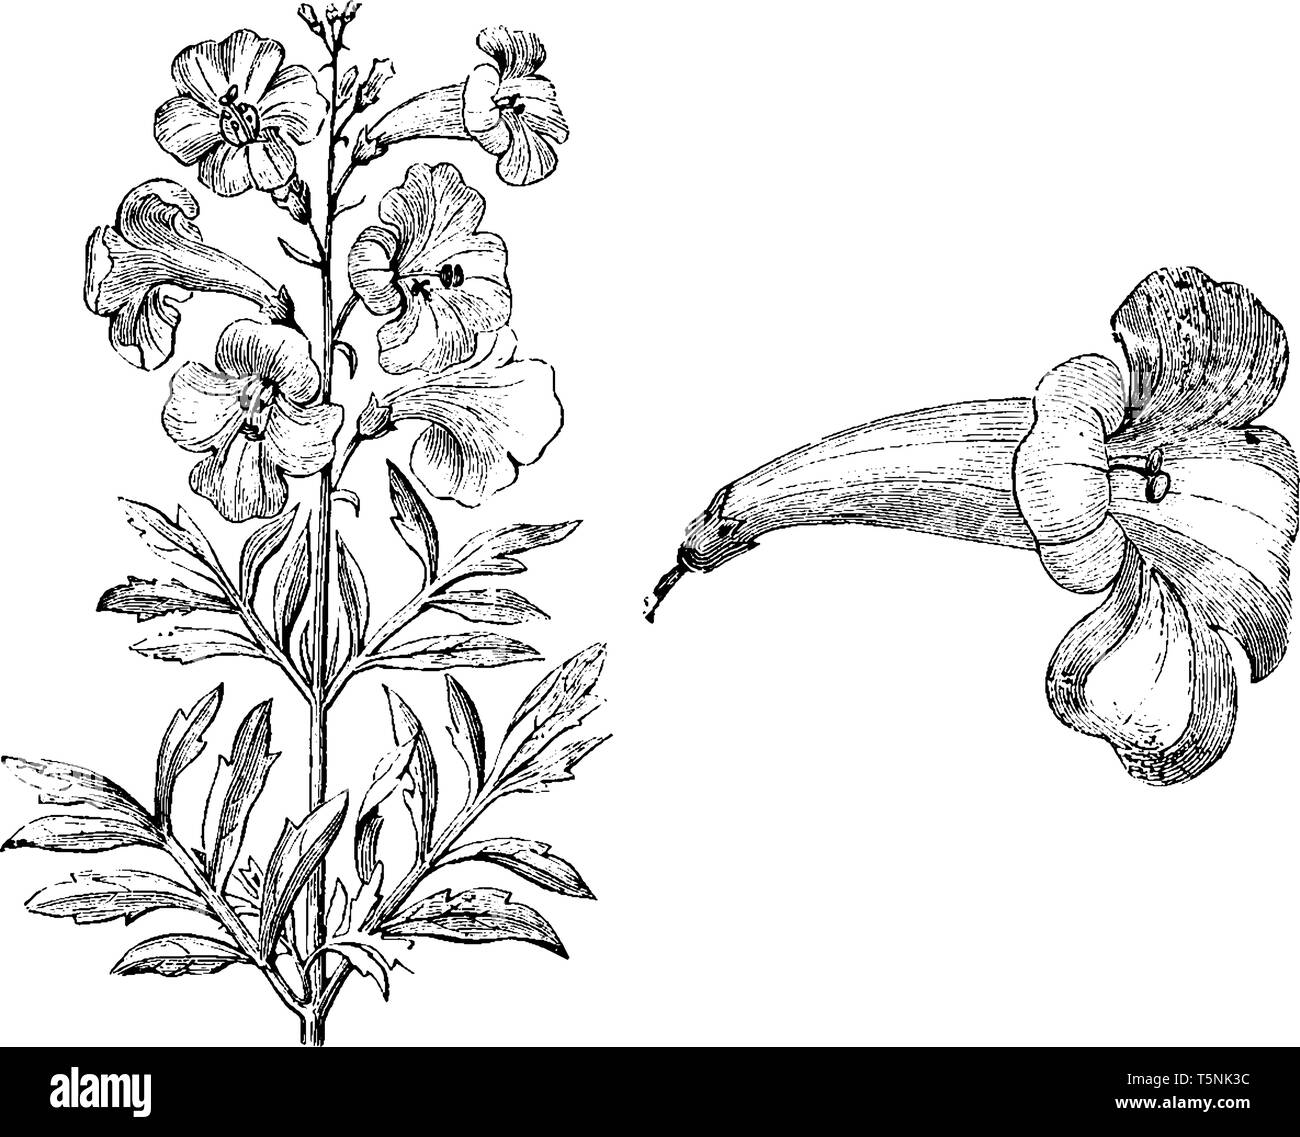 Incarvillea Olgae has bright-pink flowers, and deeply green foliage appears at the base of this plant, vintage line drawing or engraving illustration. - Stock Vector